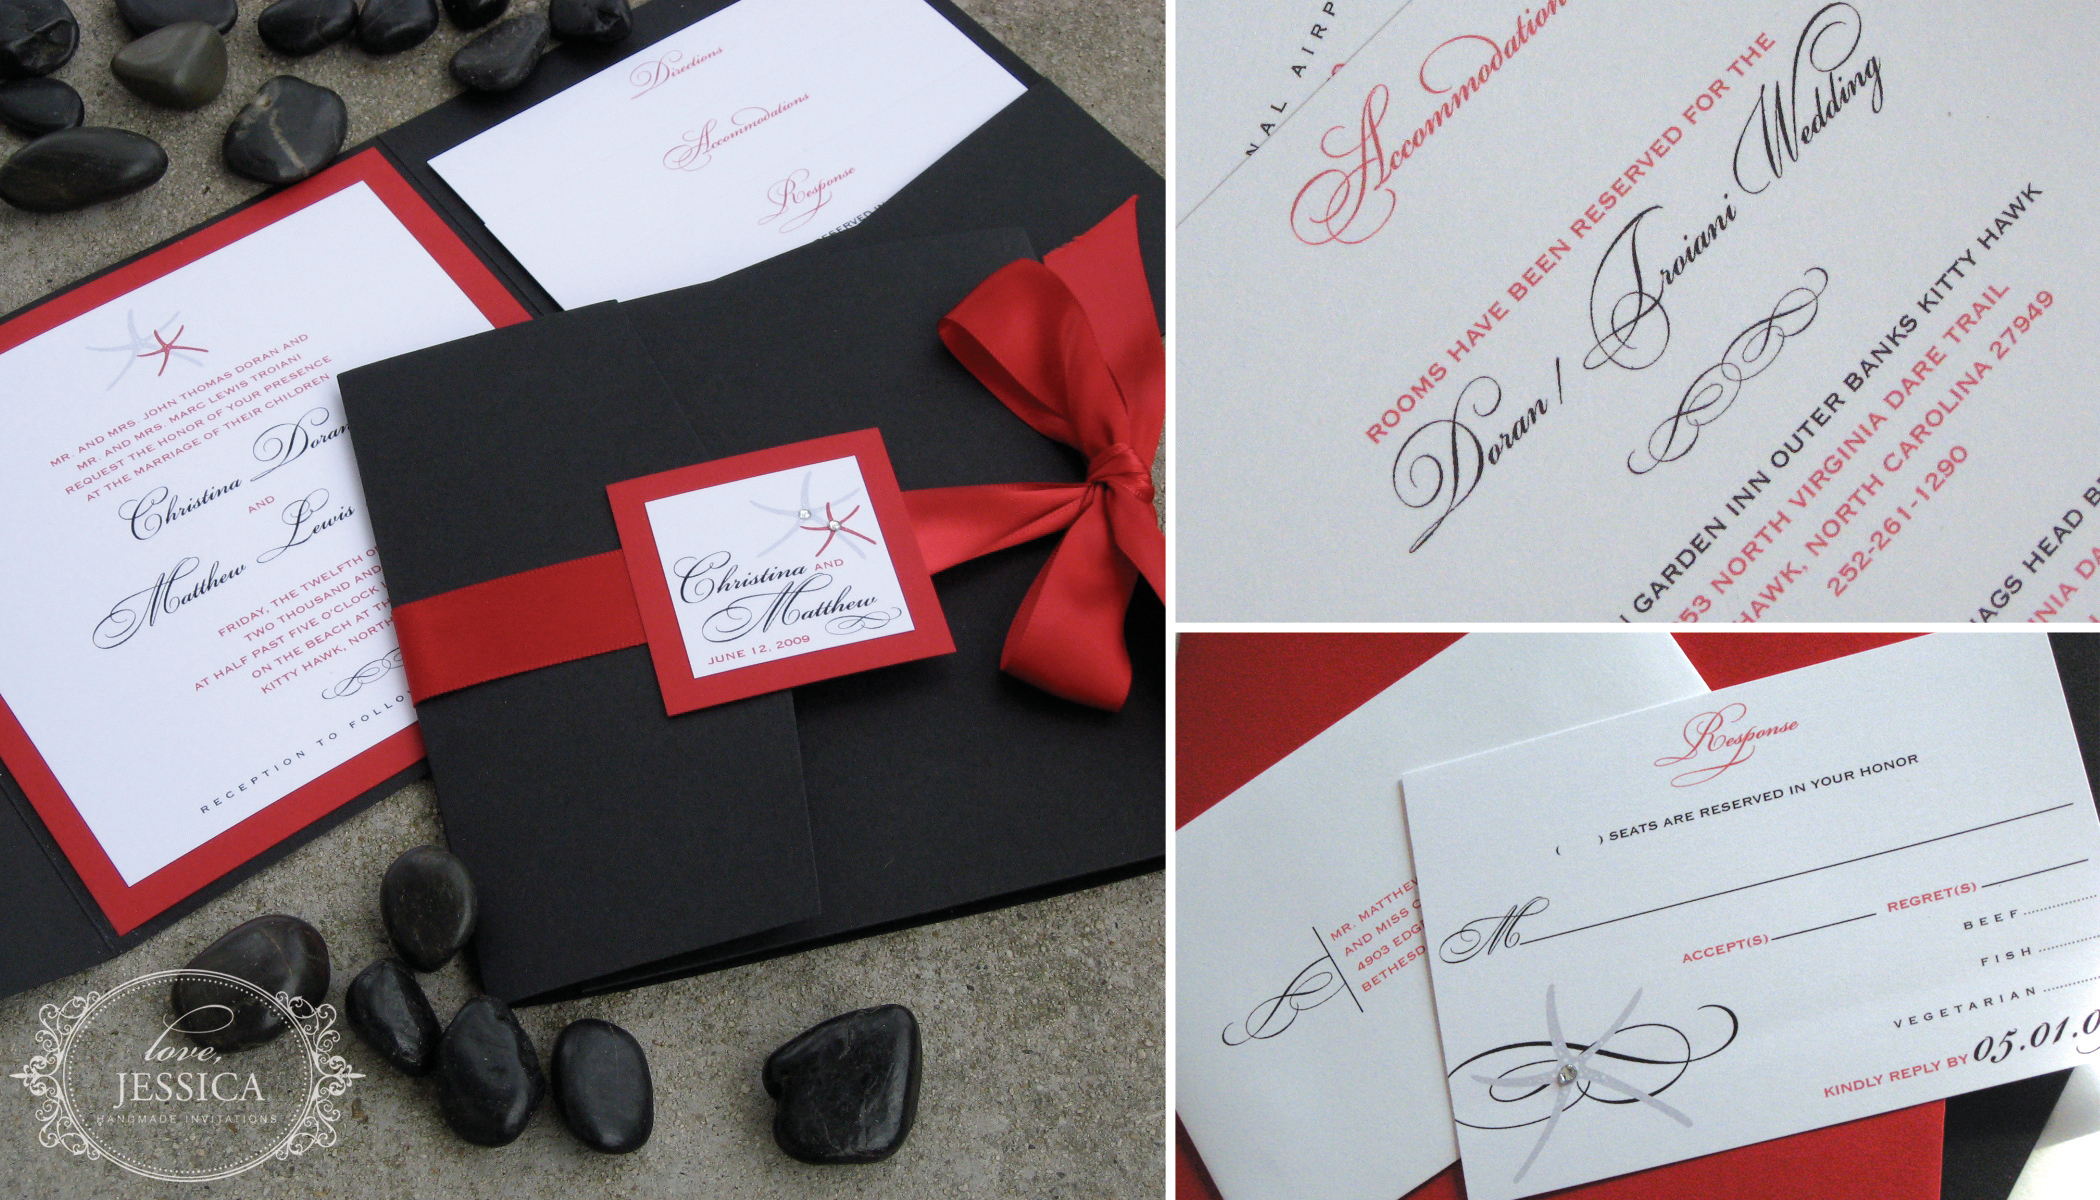 Stationery, red, black, invitation, Beach, Beach Wedding Invitations, Invitations, Starfish, Love, jessica handmade invitations